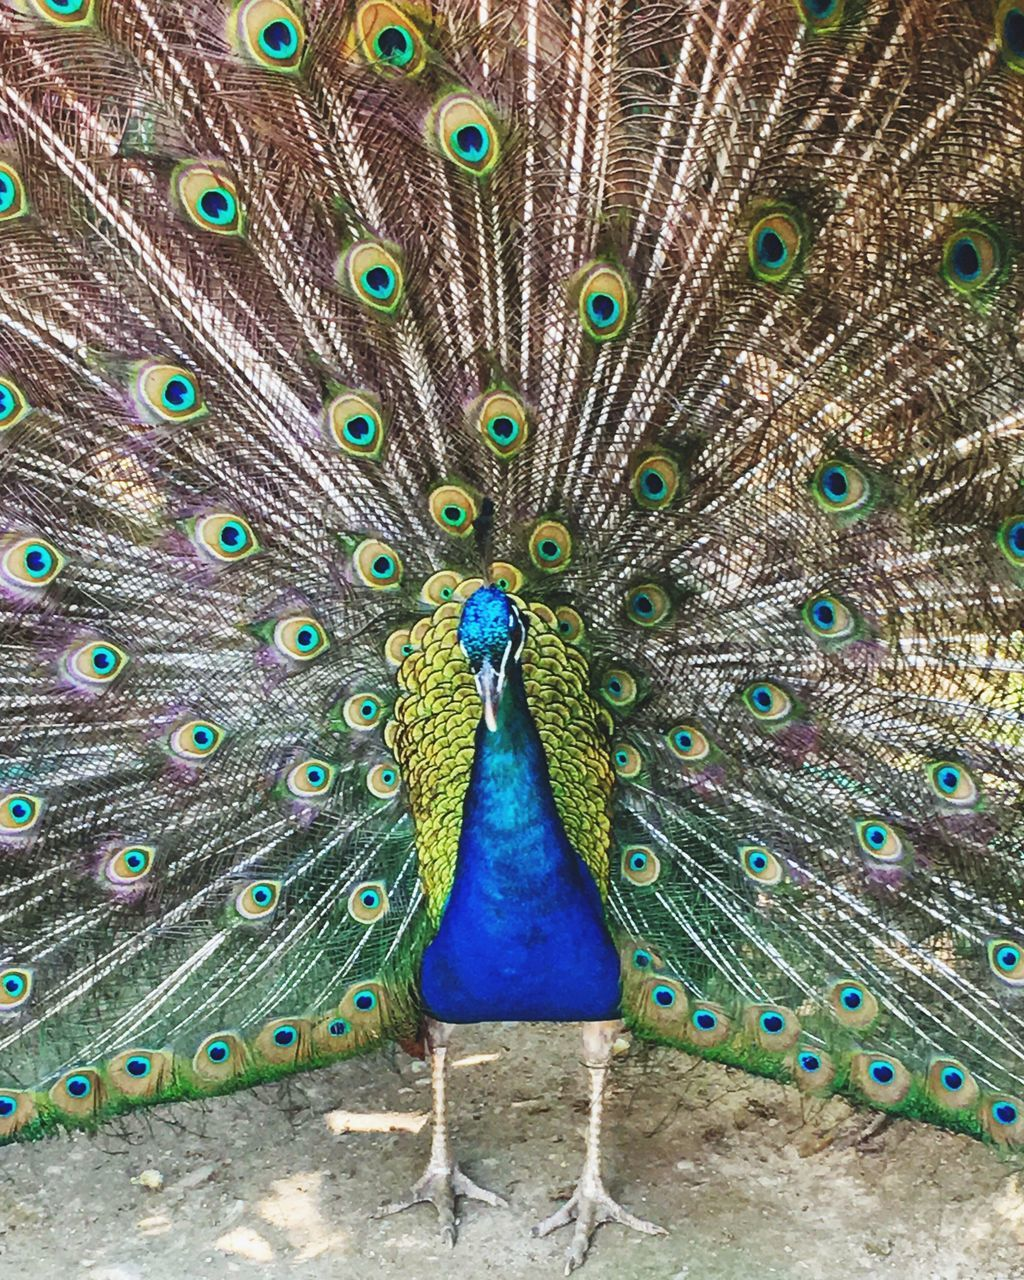 peacock, peacock feather, bird, fanned out, one animal, animal themes, feather, animals in the wild, animal wildlife, front view, multi colored, day, looking at camera, beauty in nature, outdoors, nature, no people, blue, portrait, vanity, close-up